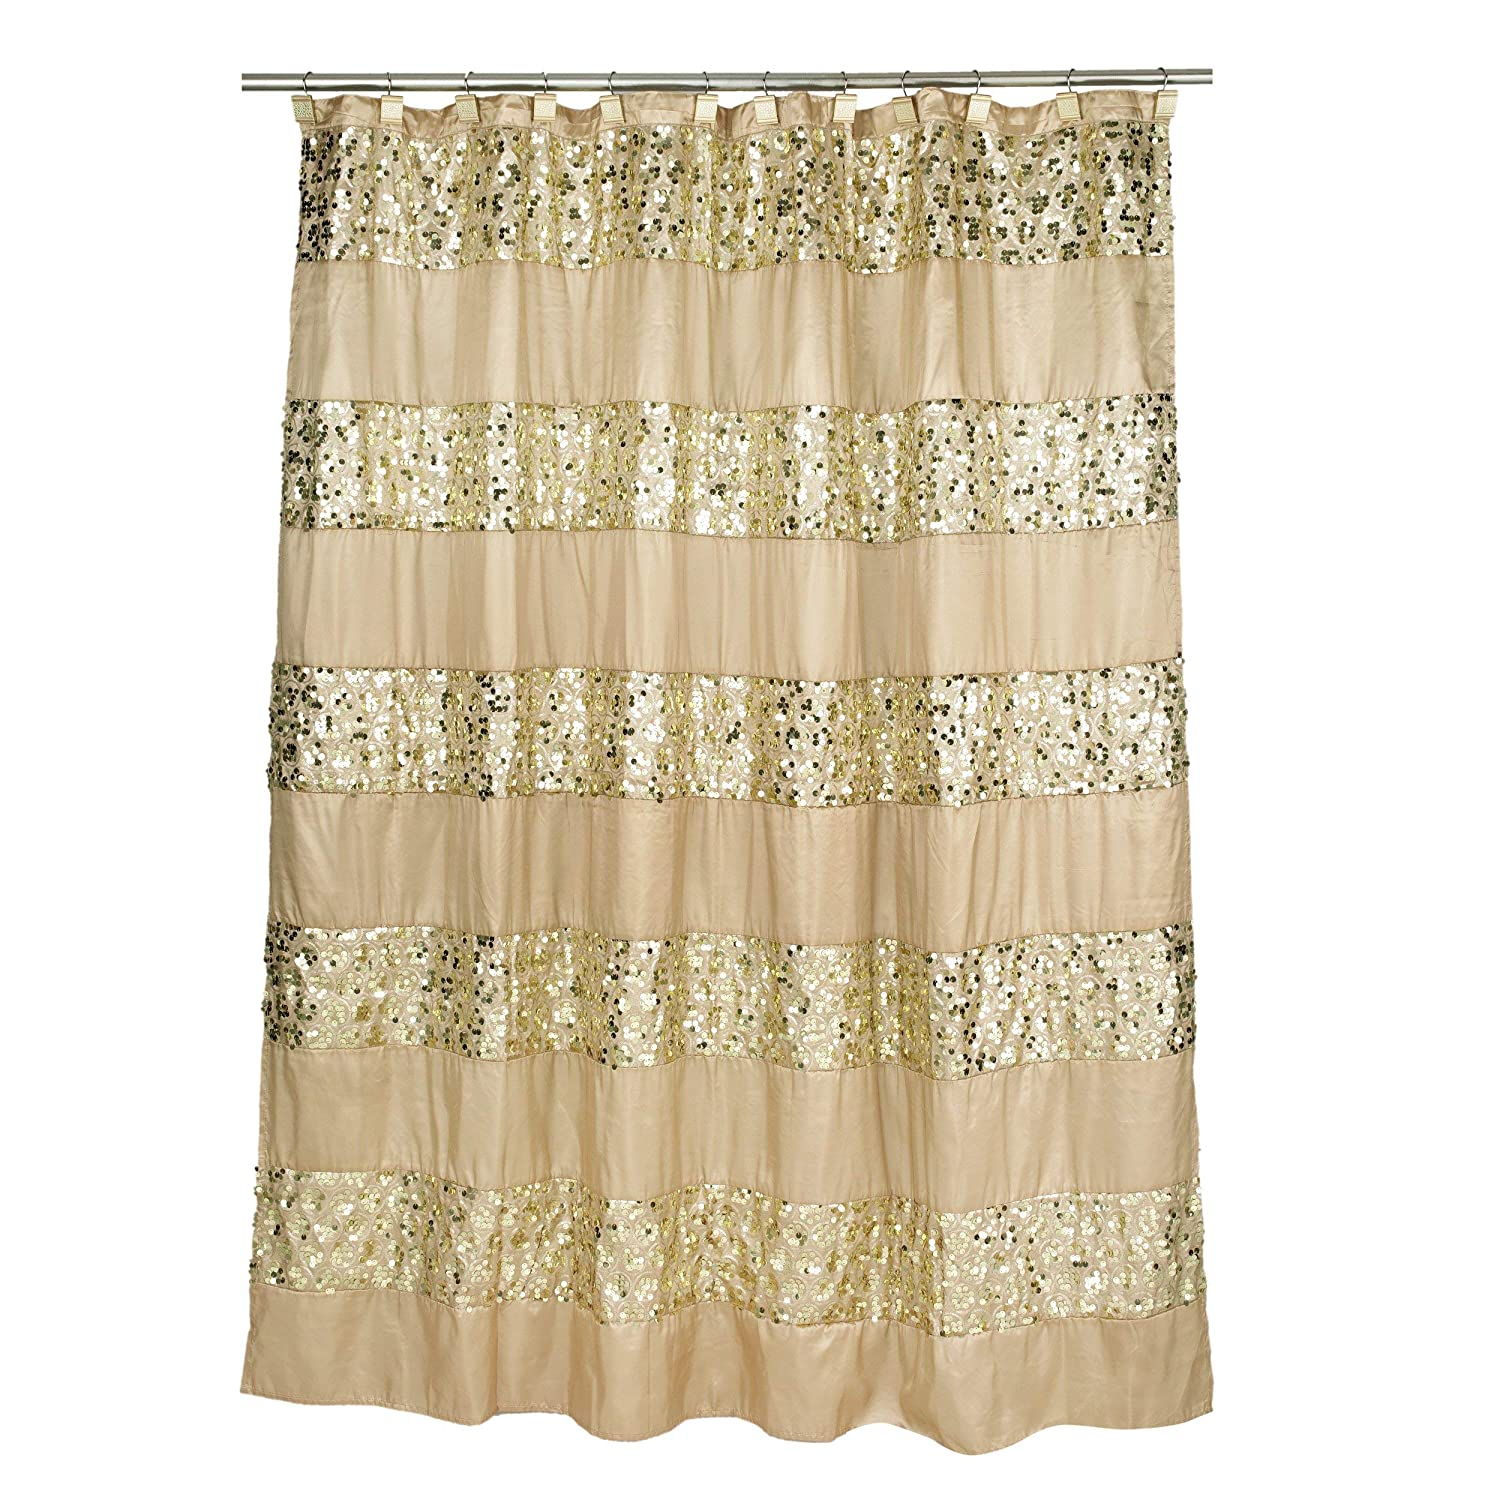 Amazon Popular Bath Shower Curtain Sinatra Collection 70 X 72 Champagne Gold Home Kitchen